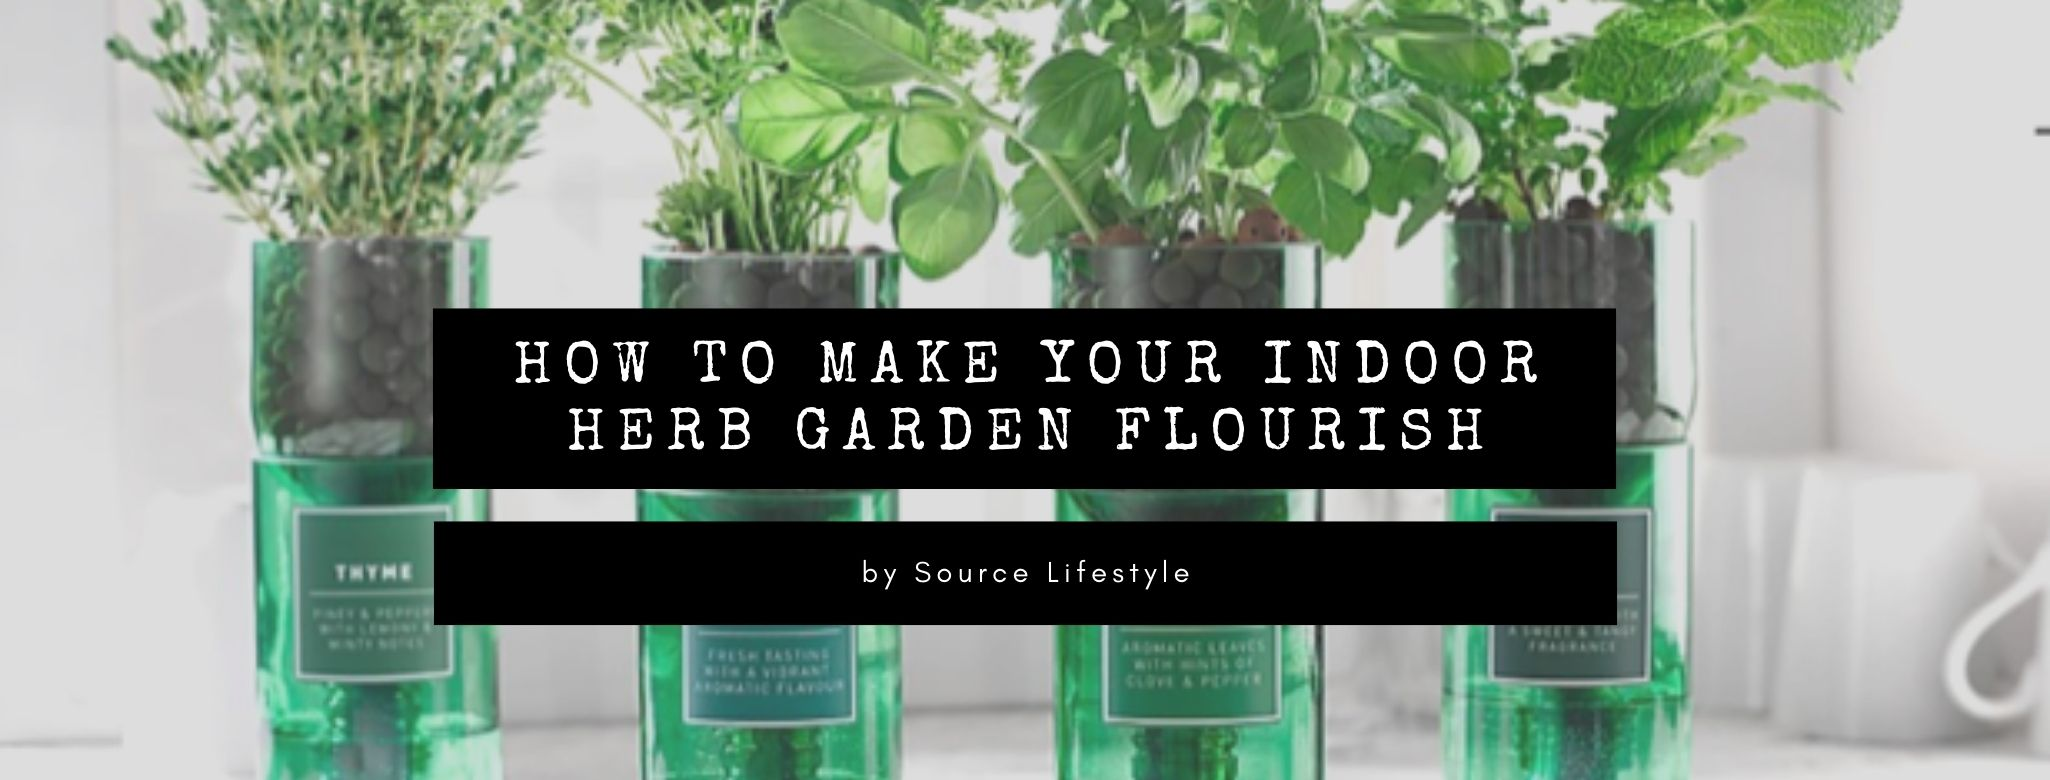 How to make your indoor herb garden flourish